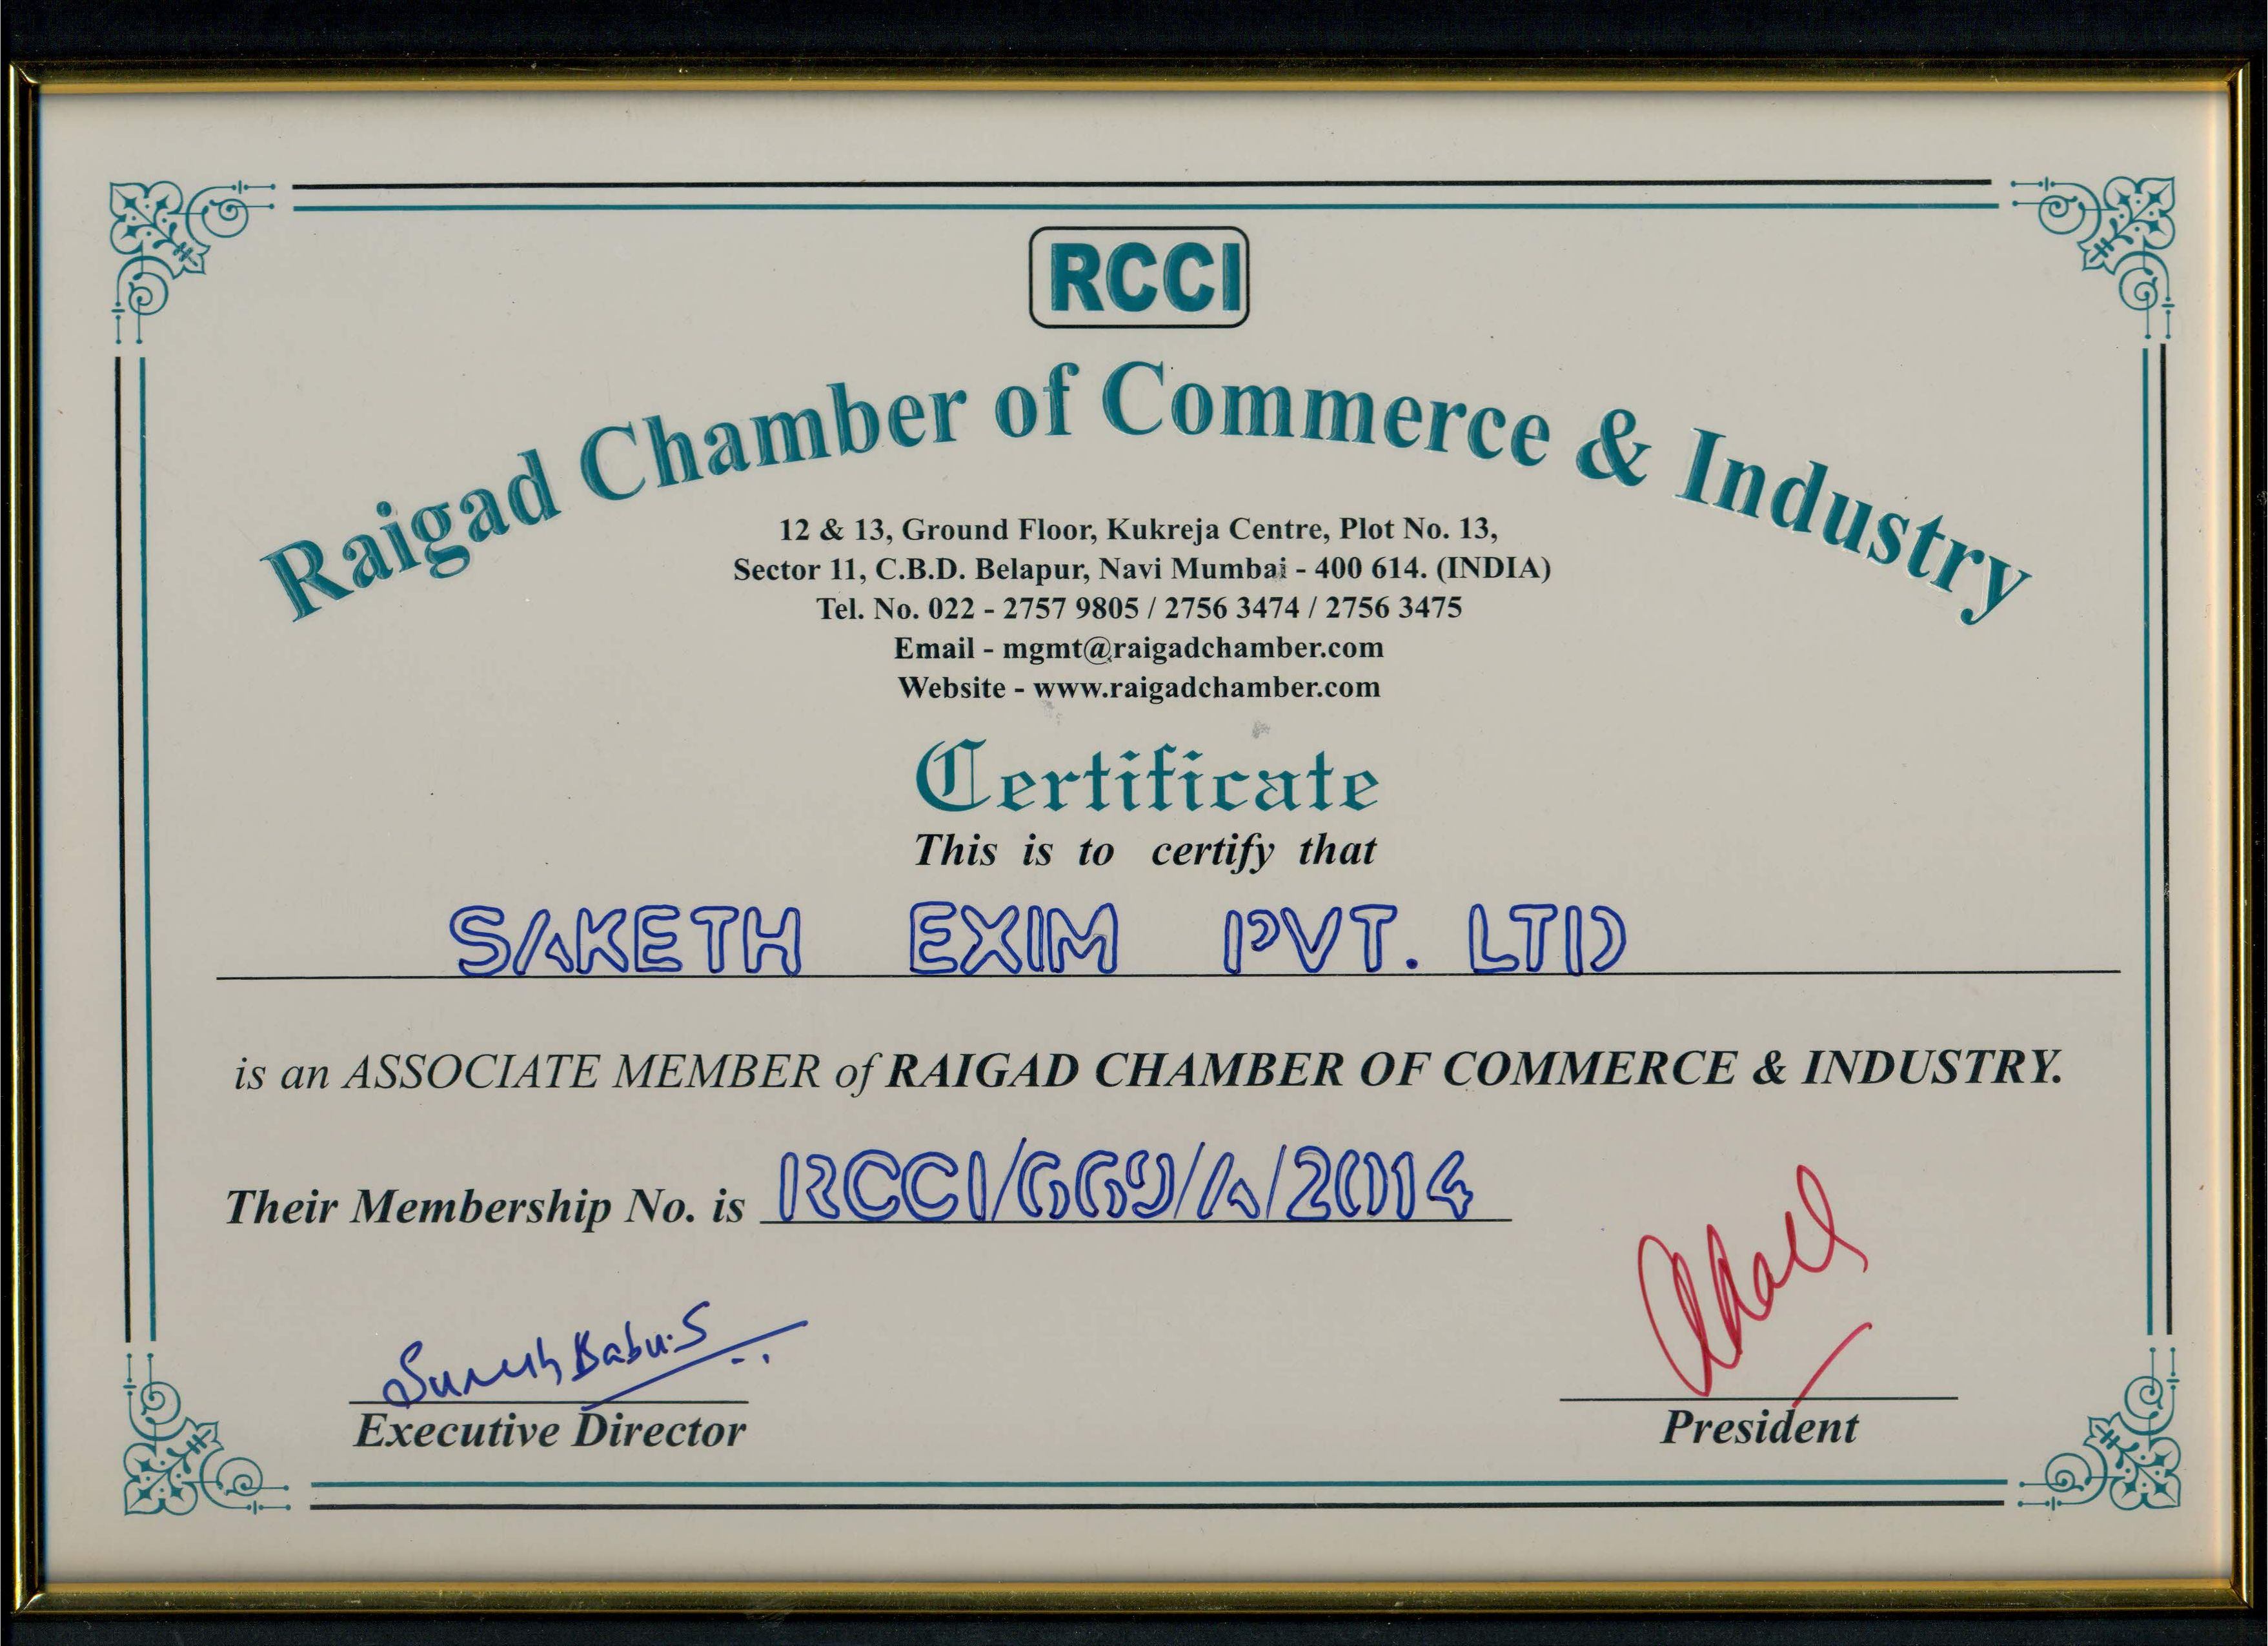 Raigad Chamber of Commerce Industry